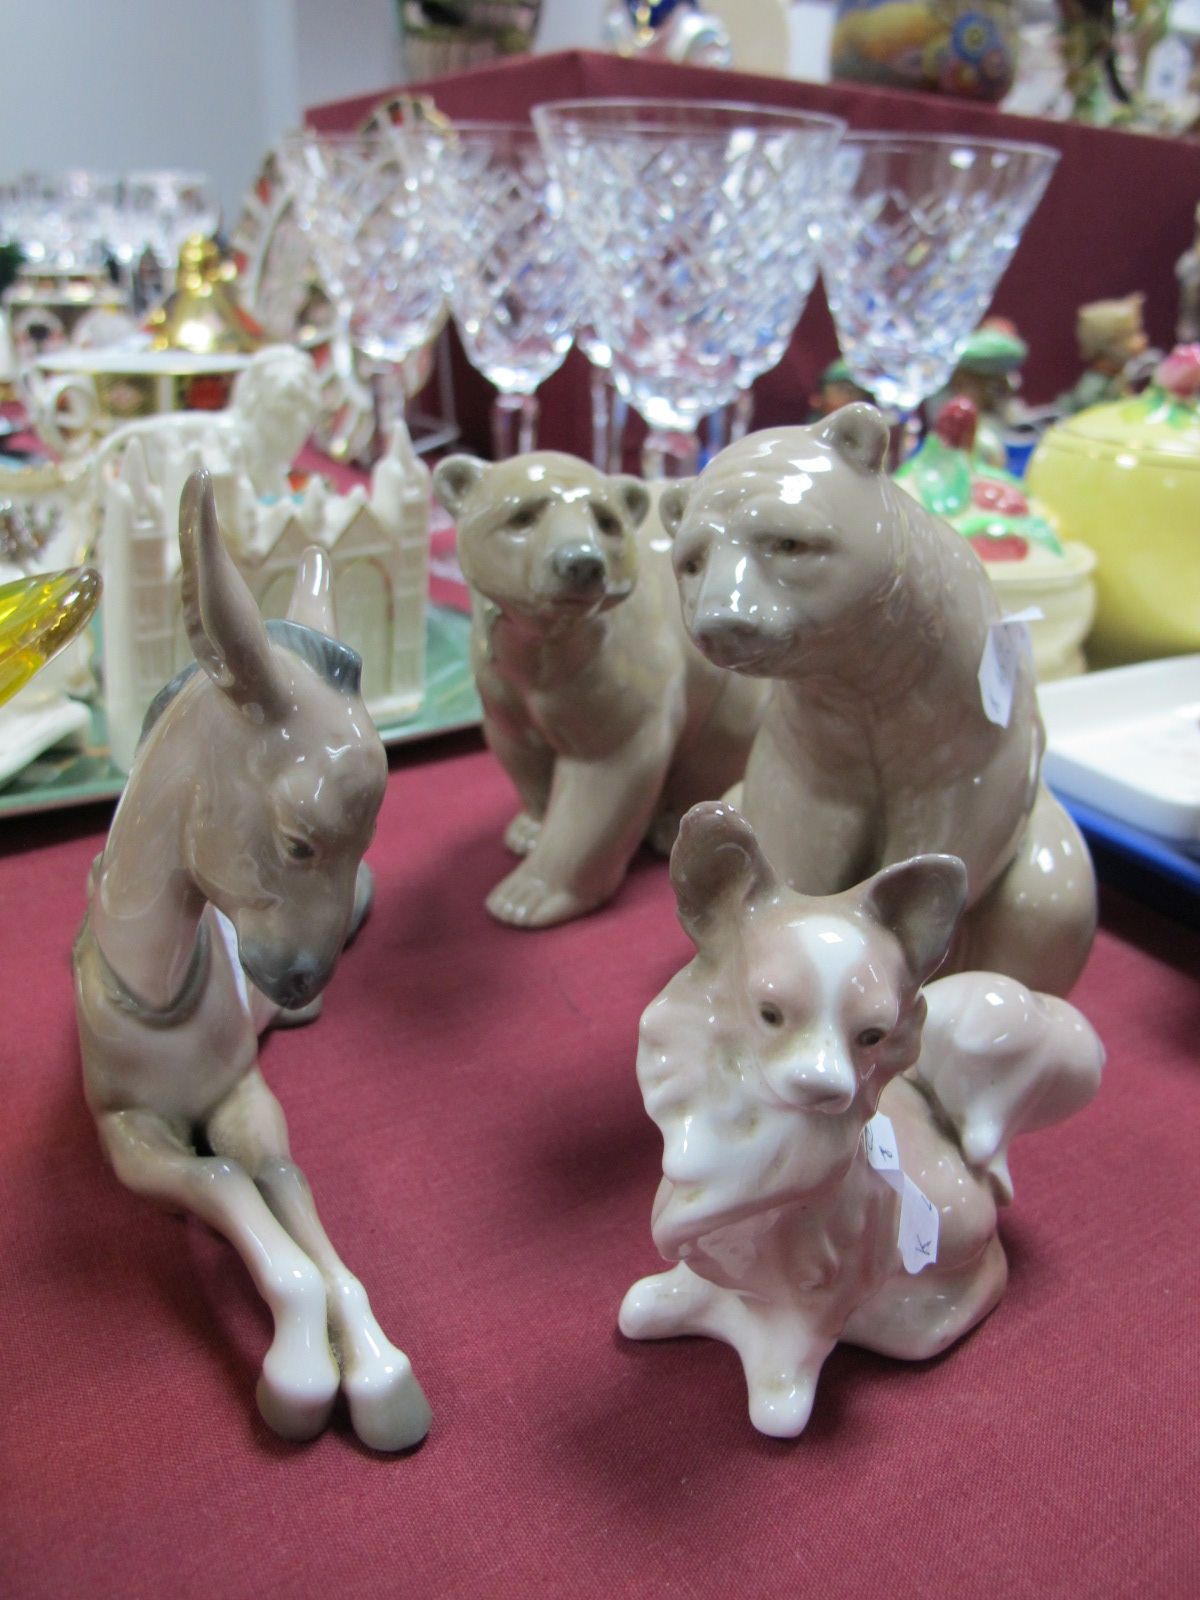 Lot 36 - Two Lladro Figures of Bears, Lladro figure of a donkey and a dog. (4)